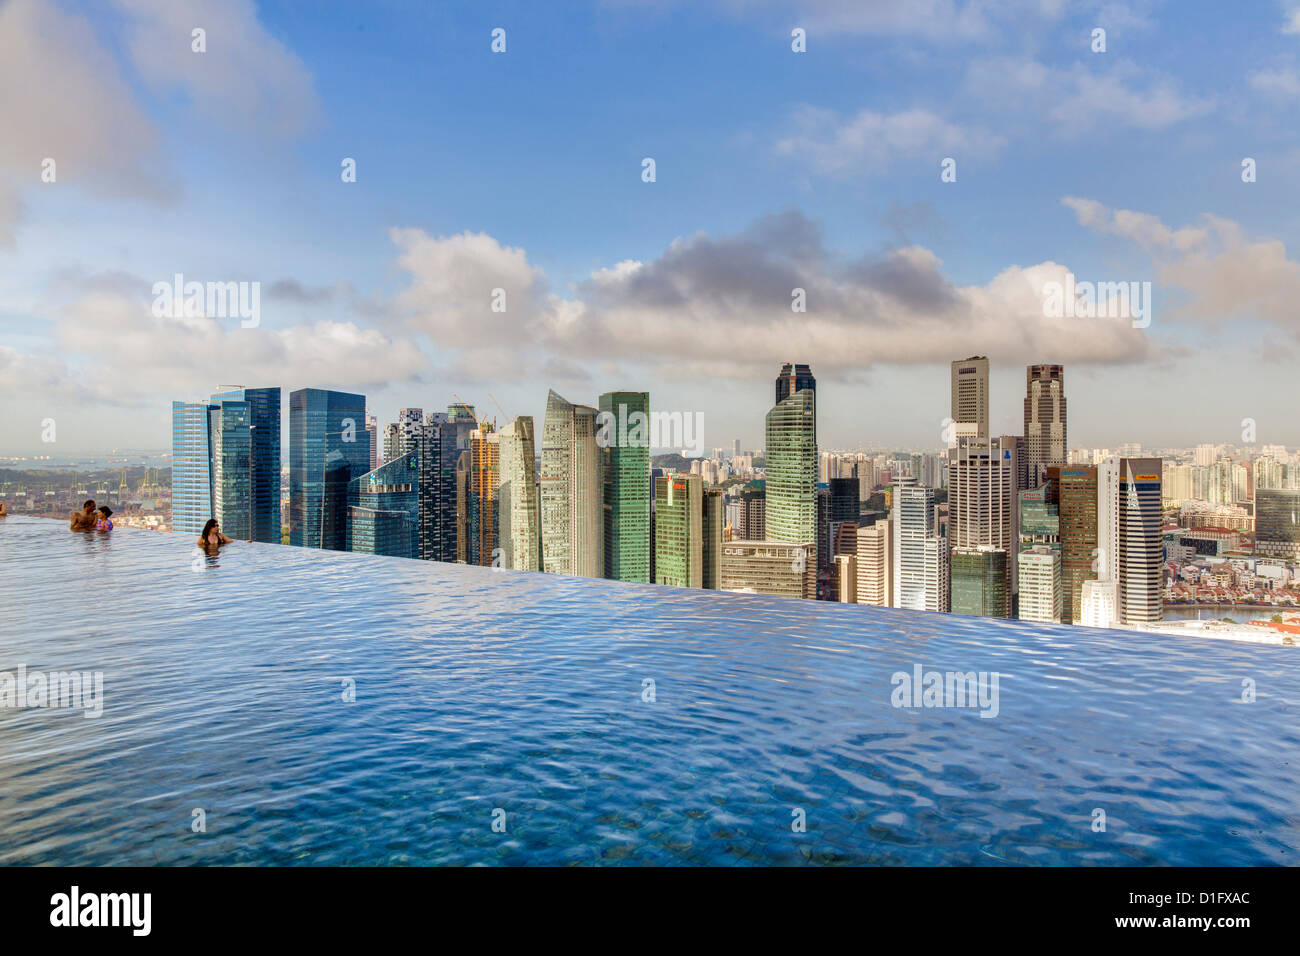 Sands skypark infinity swimming pool on the 57th floor of marina bay stock photo royalty free - Marina bay sands resort singapore swimming pool ...